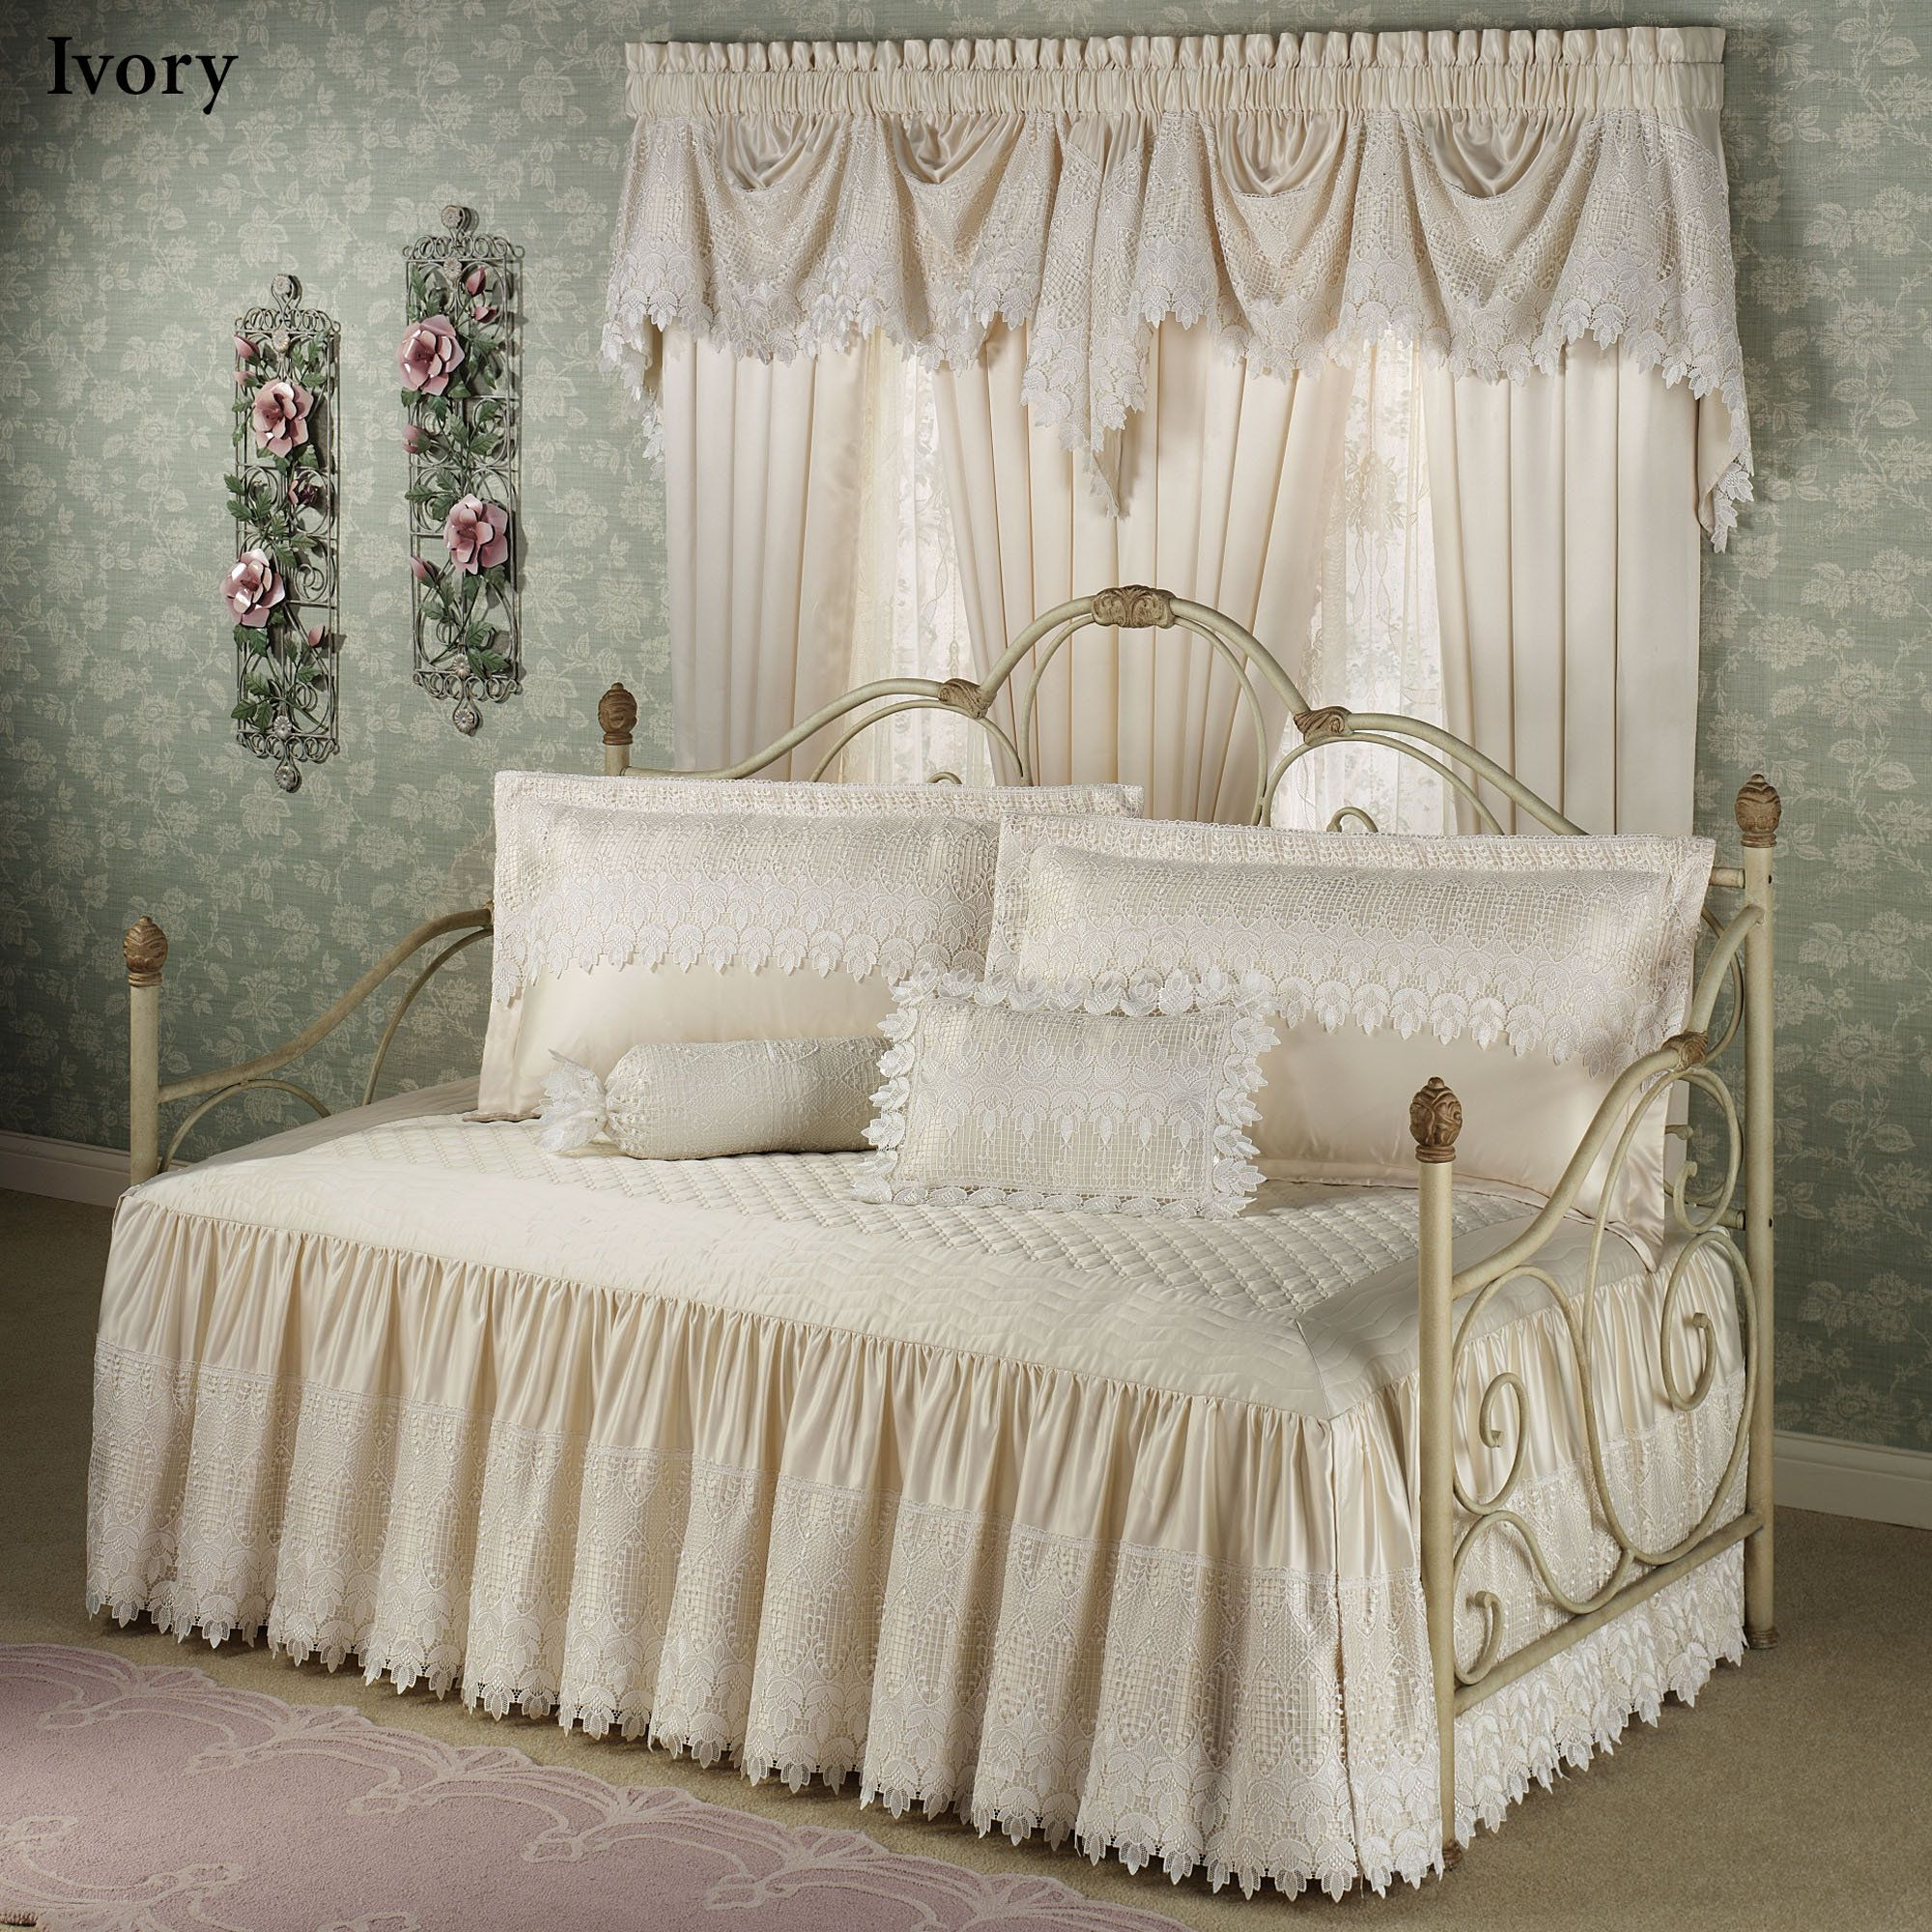 Overstock daybed bedding home design ideas - Bedrooms Trousseau Lace Daybed Bedding